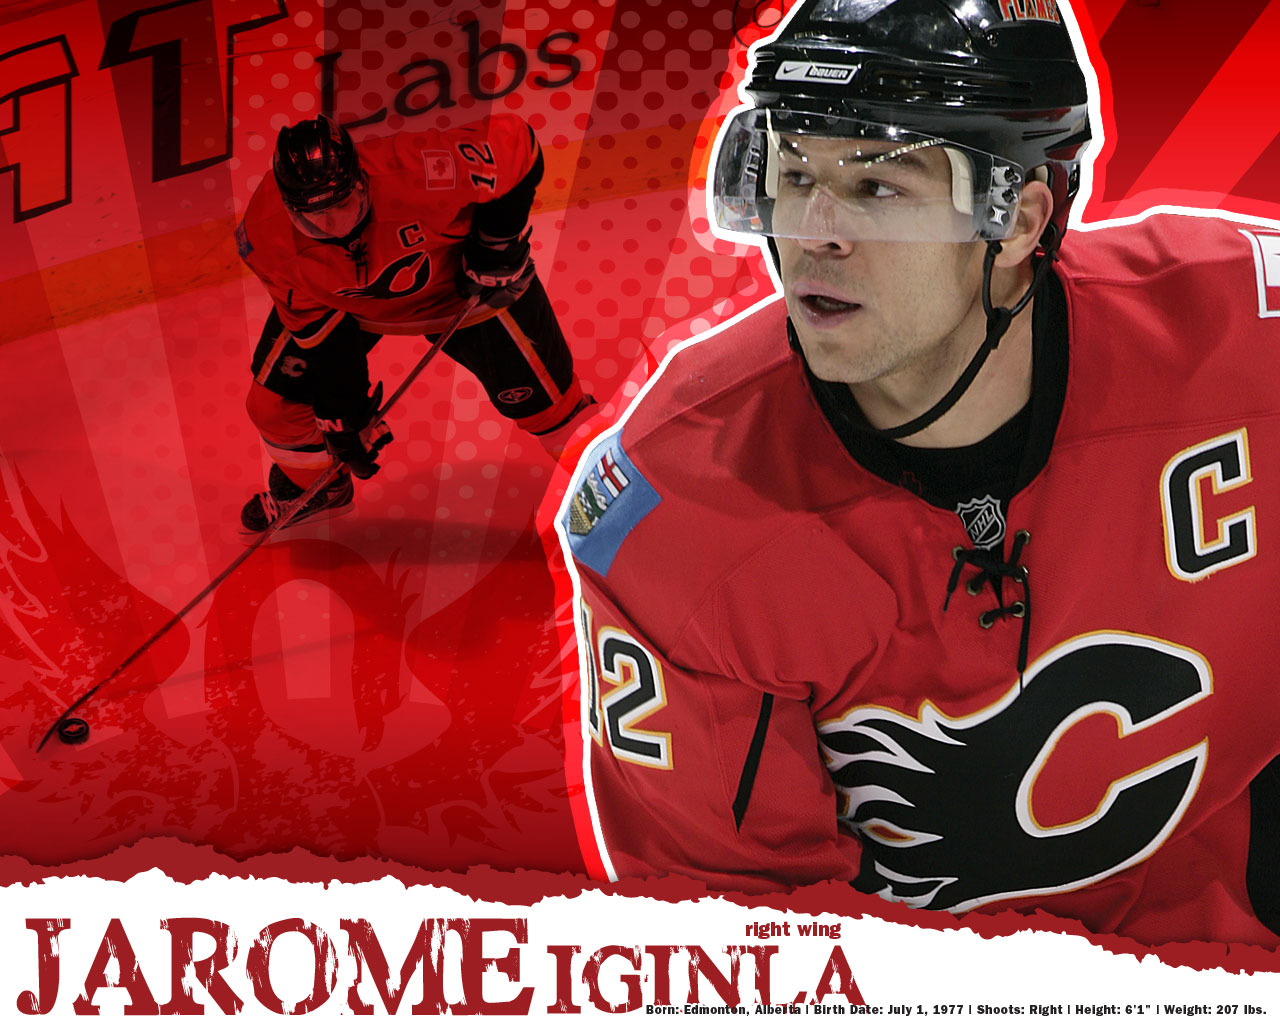 Jarome Iginla Calgary Flames Wallpaper 176352 HD Wallpaper Res 1280x1024